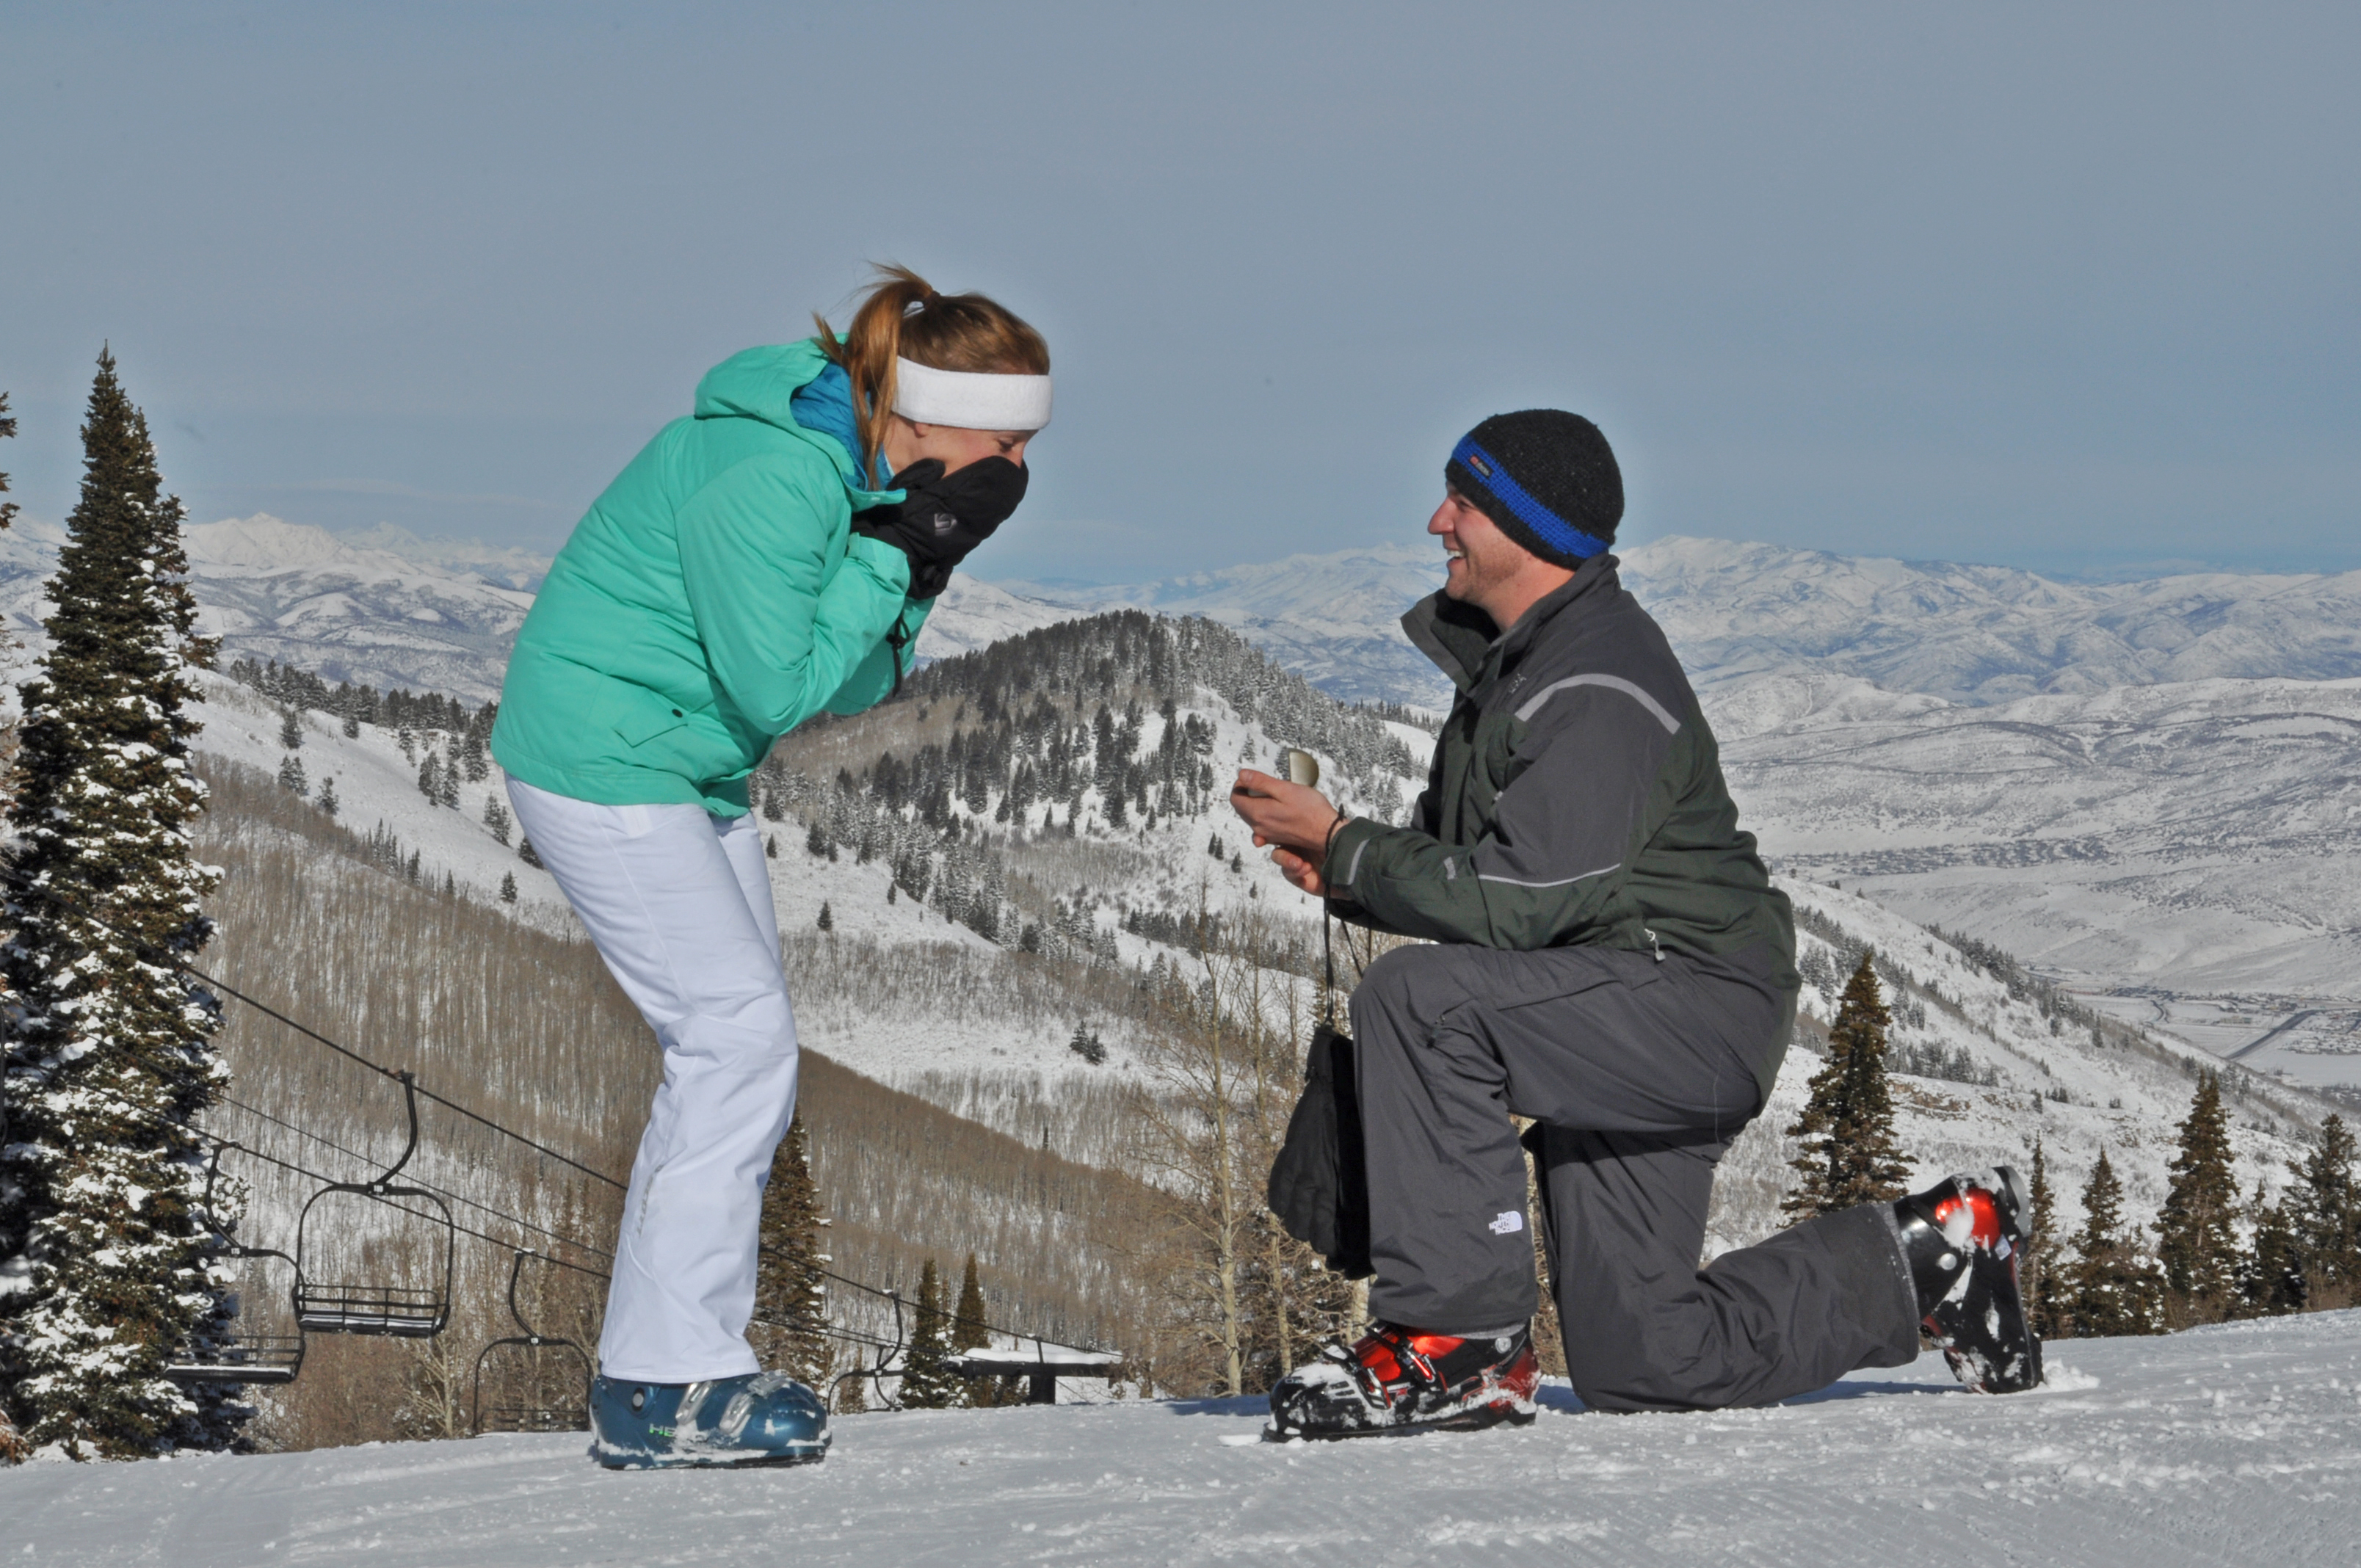 Image 2 of Kristin and Dustin | Park City Proposal